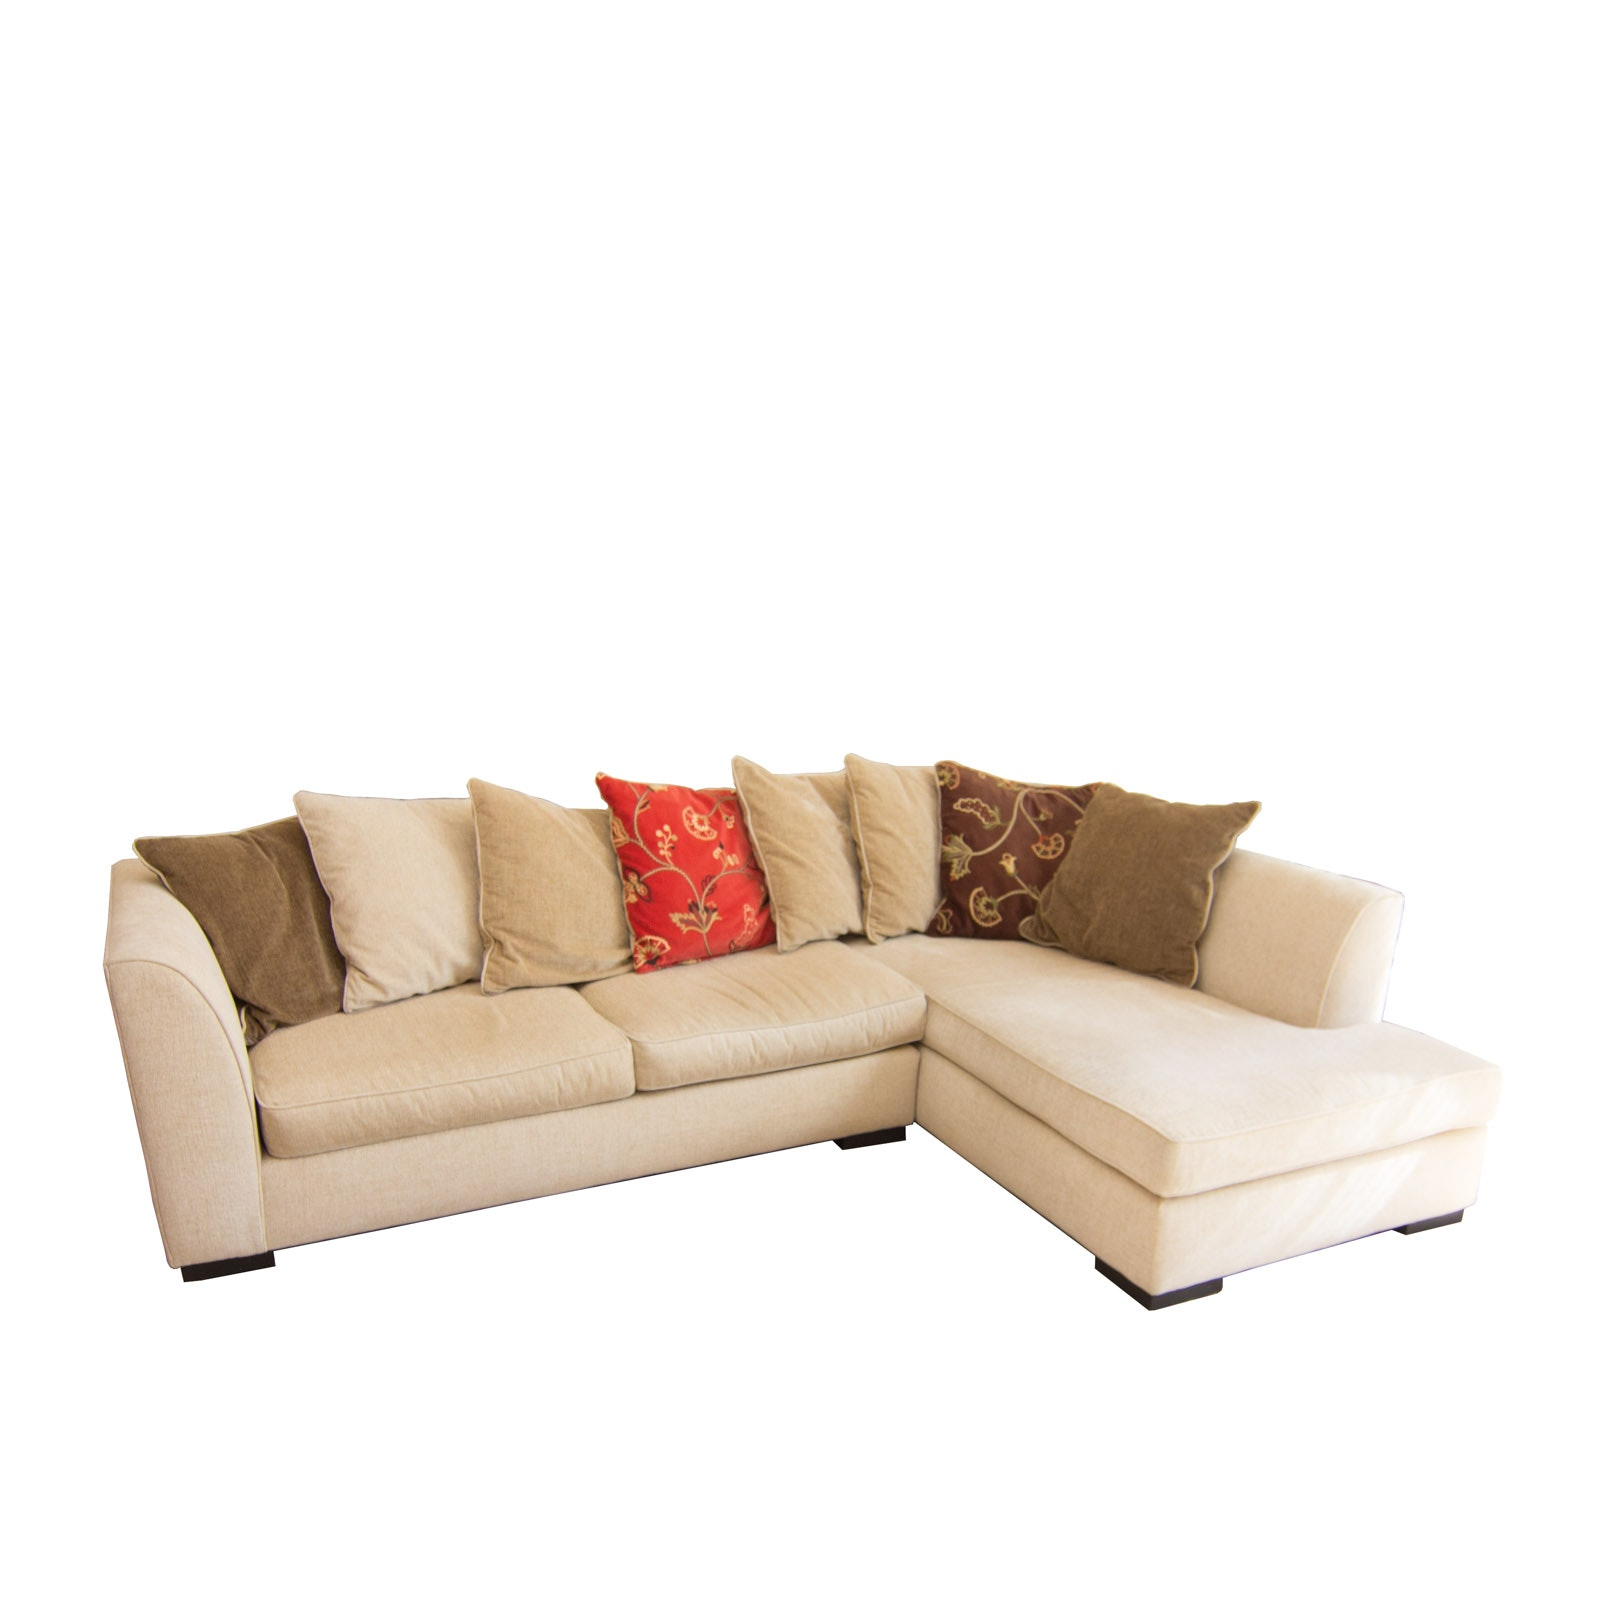 Upholstered Arhaus Sectional Sofa with Decorative Pillows